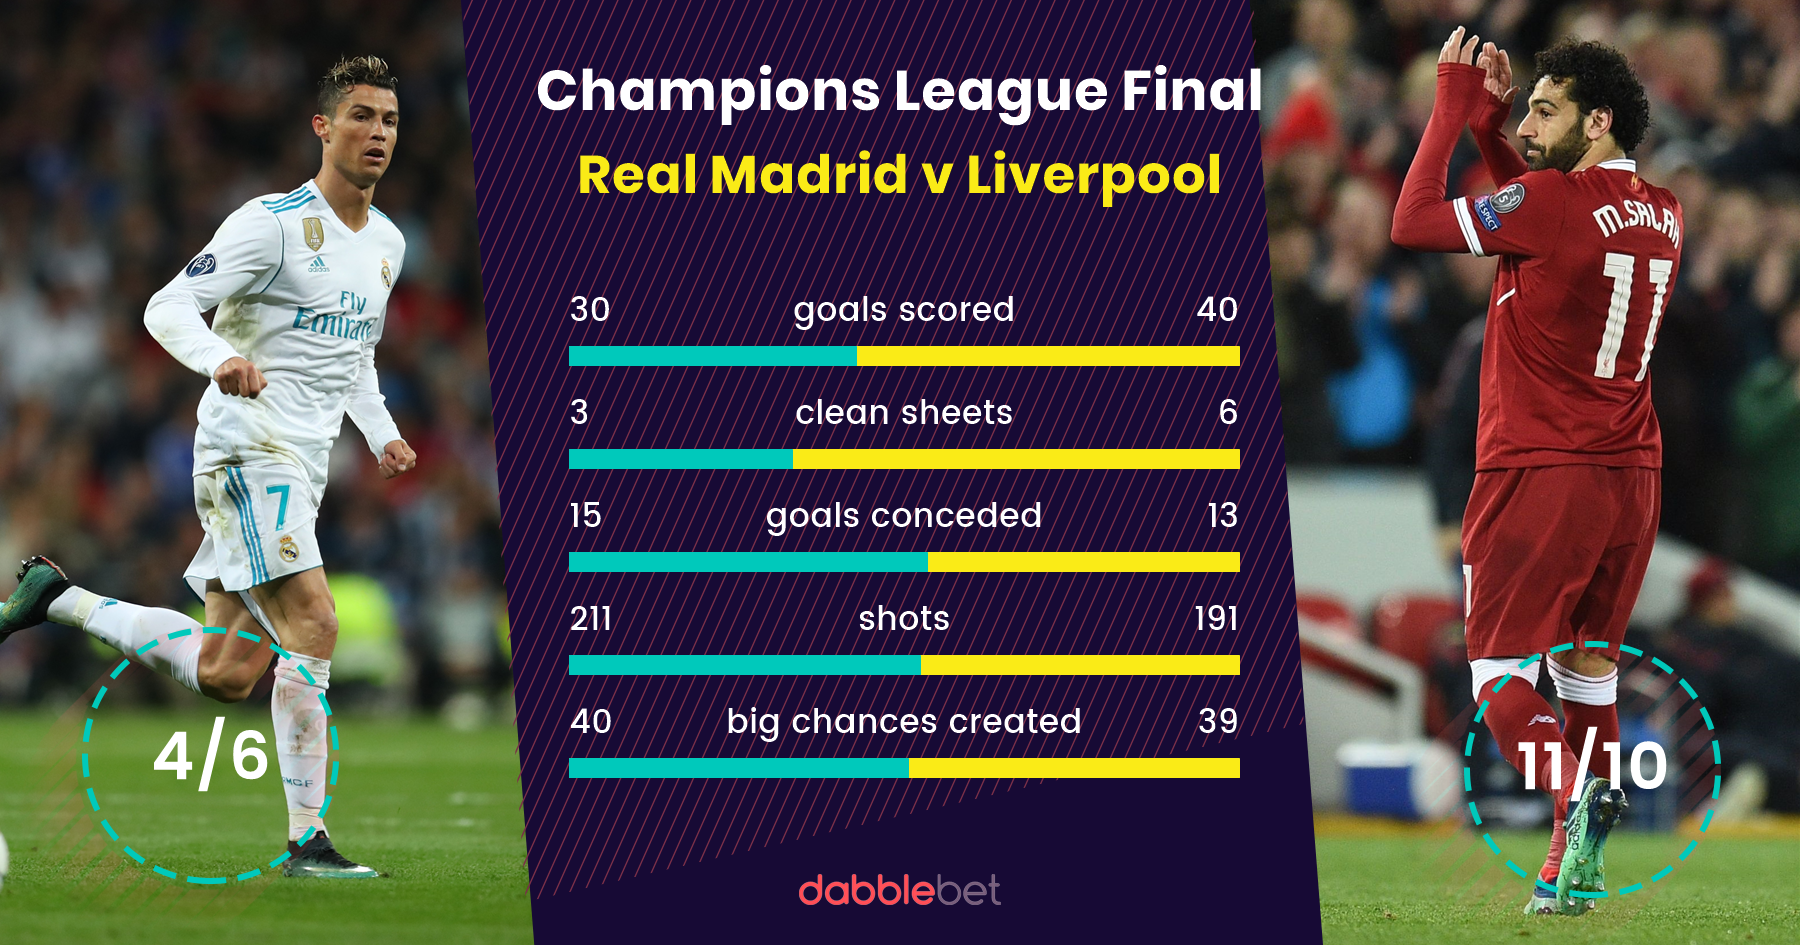 Champions League Final Odds Liverpool 11 10 To Beat Real Madrid